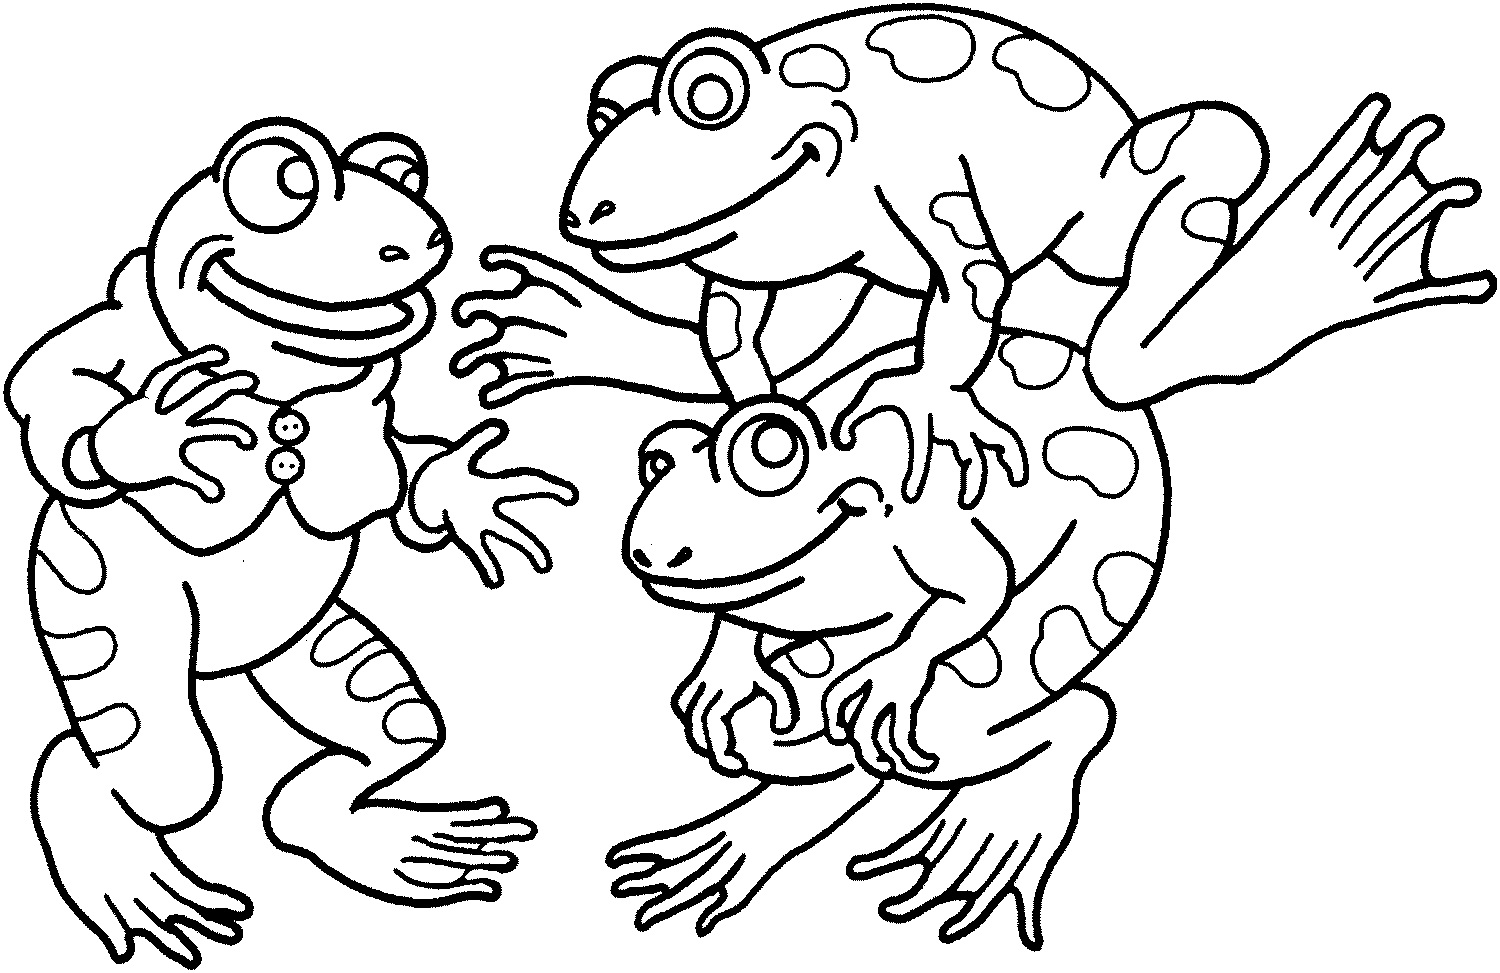 coloring page of frogs - Frog Coloring Sheets